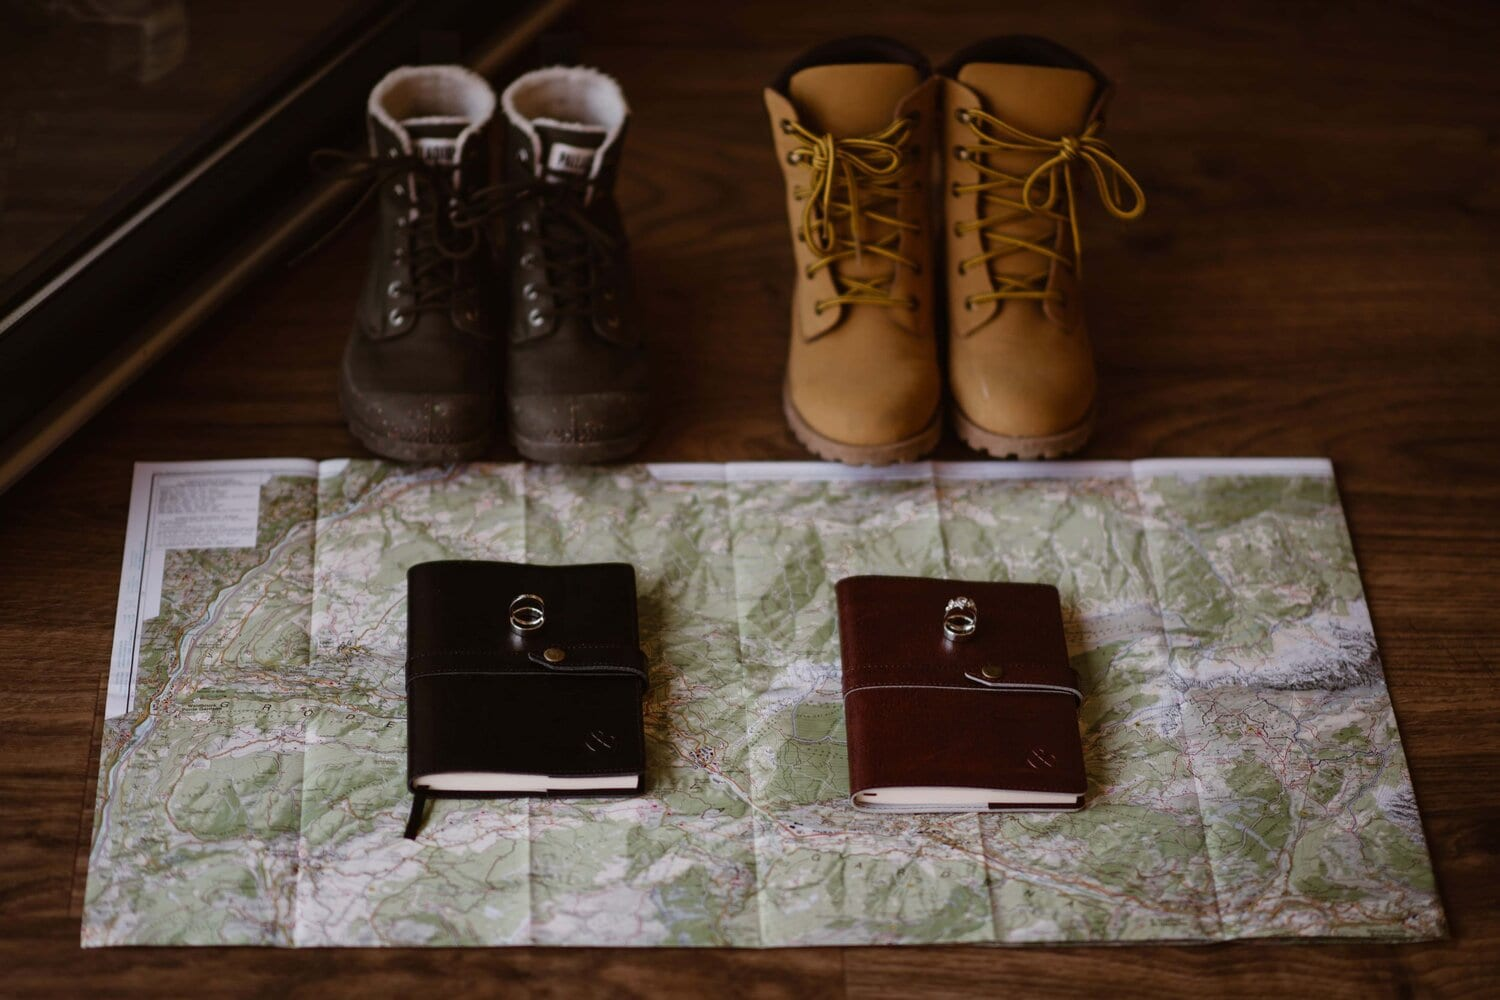 A close-up of two pairs of boots next to two vow books which sit on a map of the Italian Dolomites. There are wedding rings on top of the two vow books.